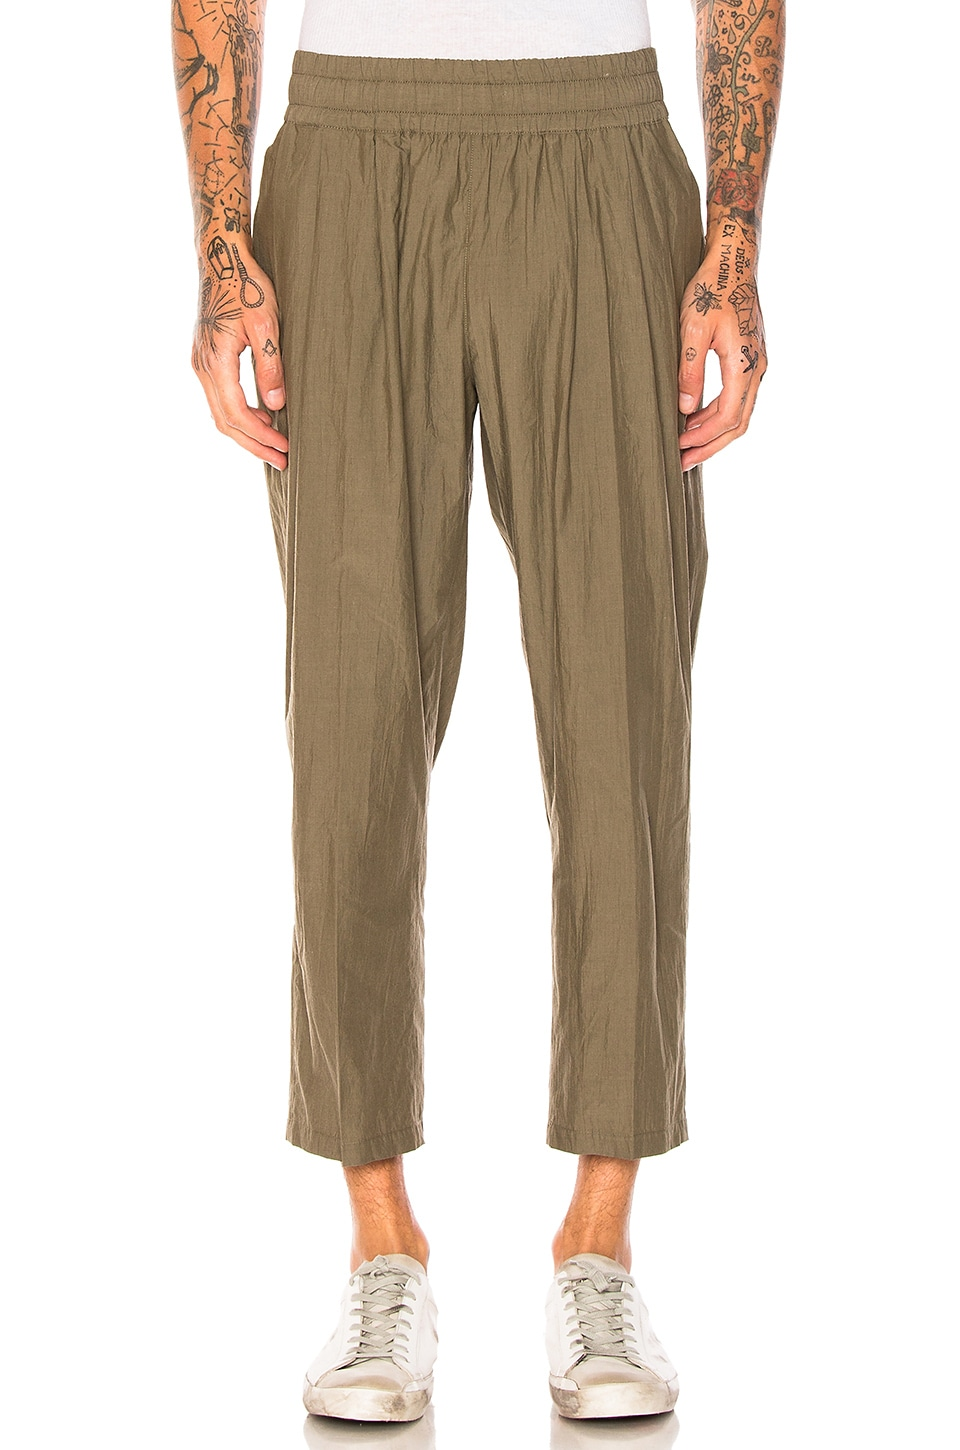 Maiden Noir Cropped Trousers in Olive